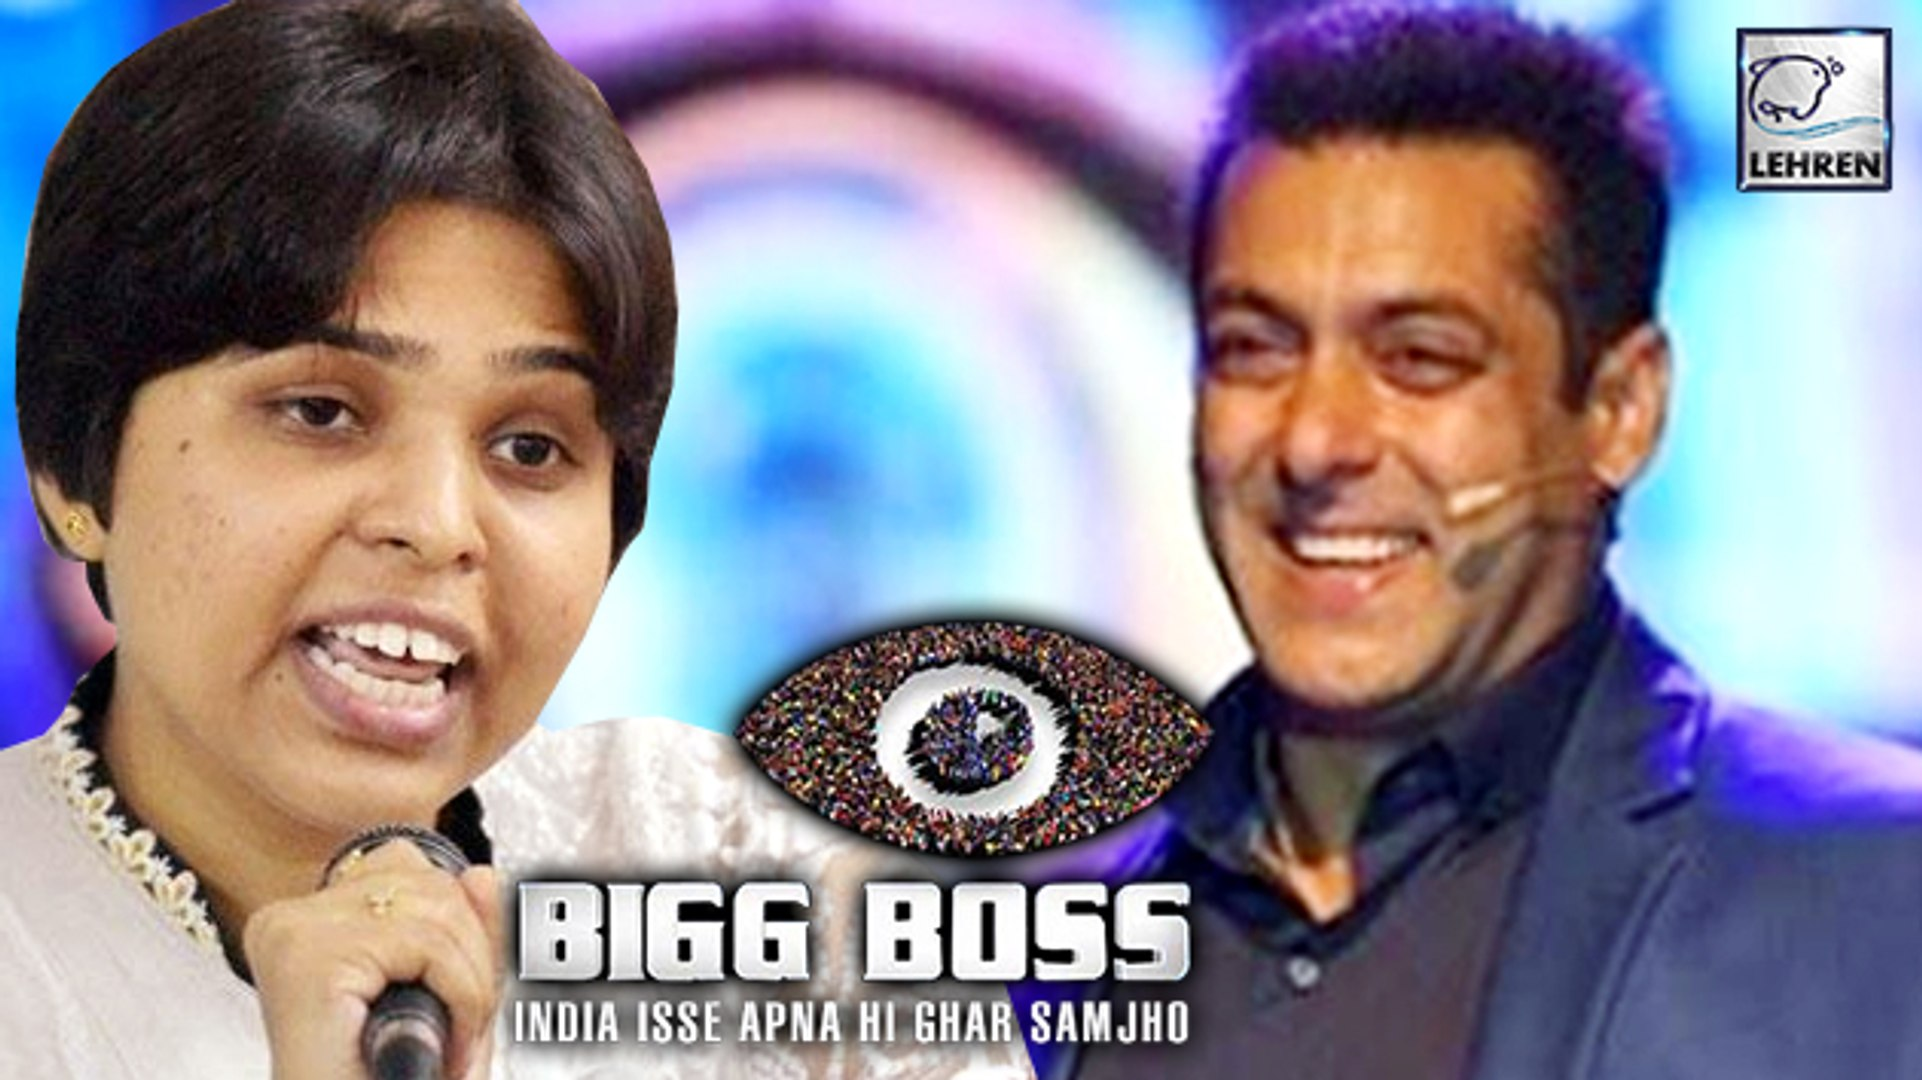 Bigg Boss 10: Activist Trupti Desai Enters The Show